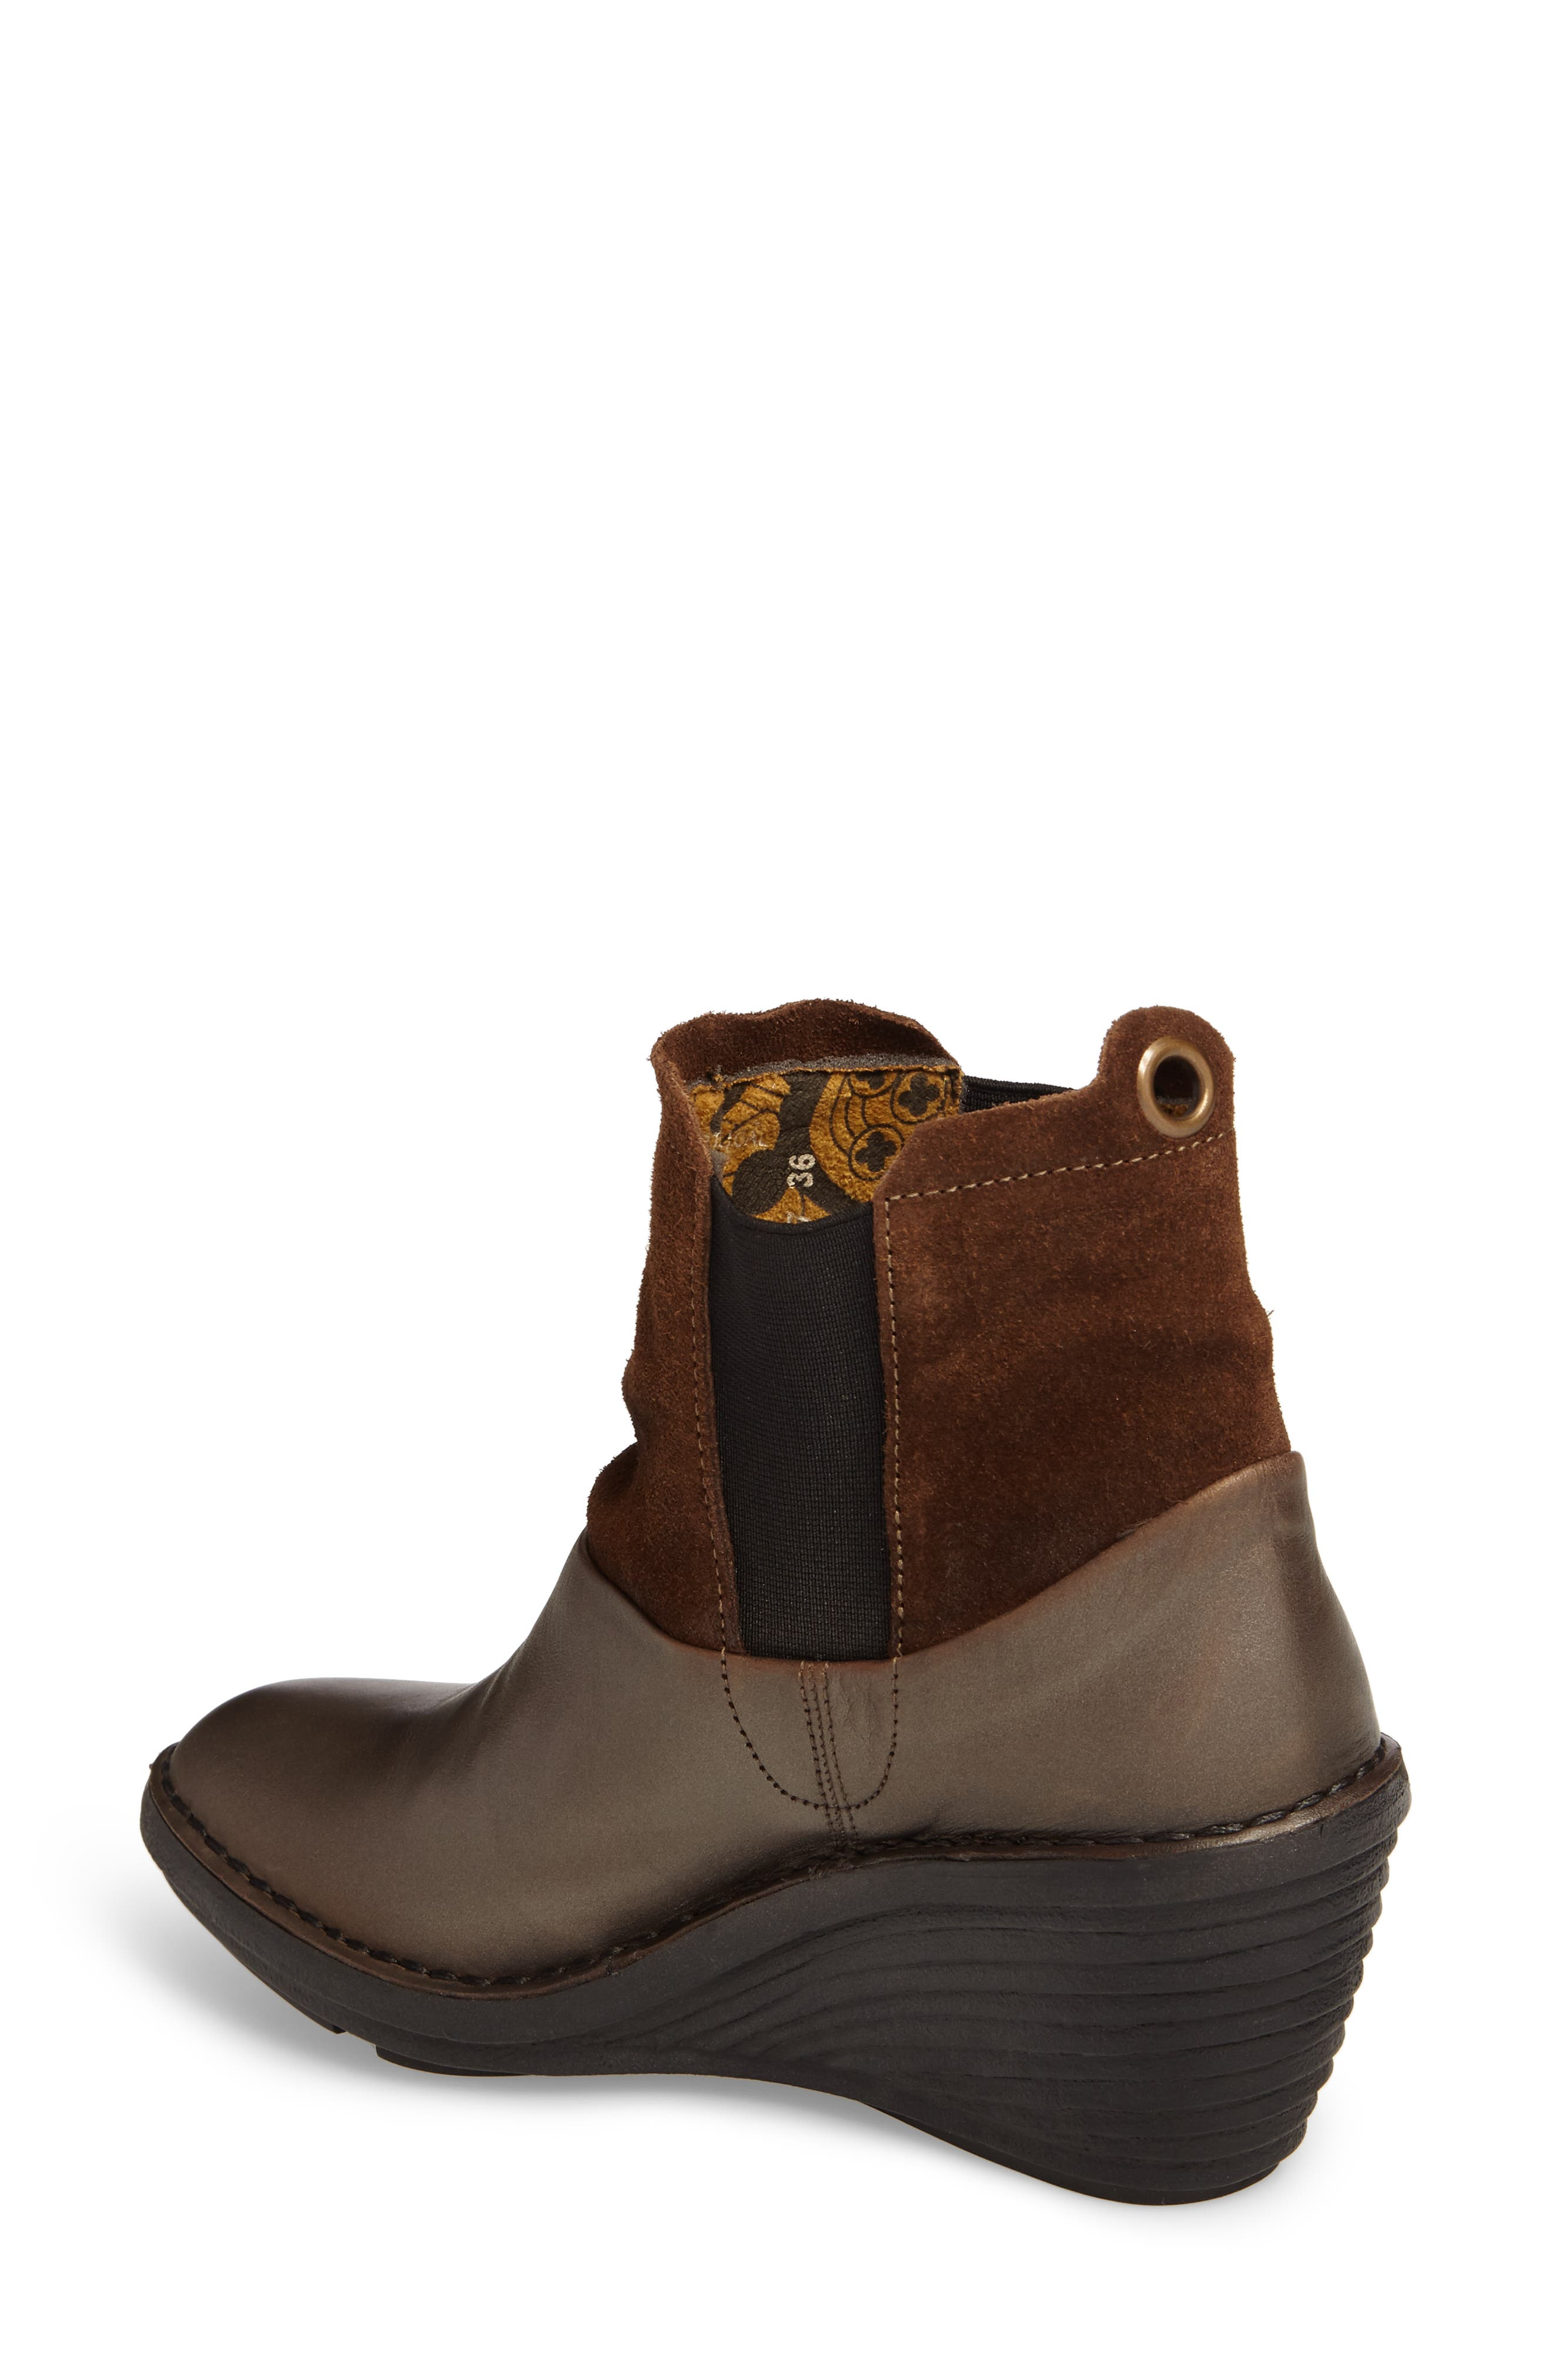 Sula Wedge Bootie,                             Alternate thumbnail 2, color,                             Olive/ Camel Suede